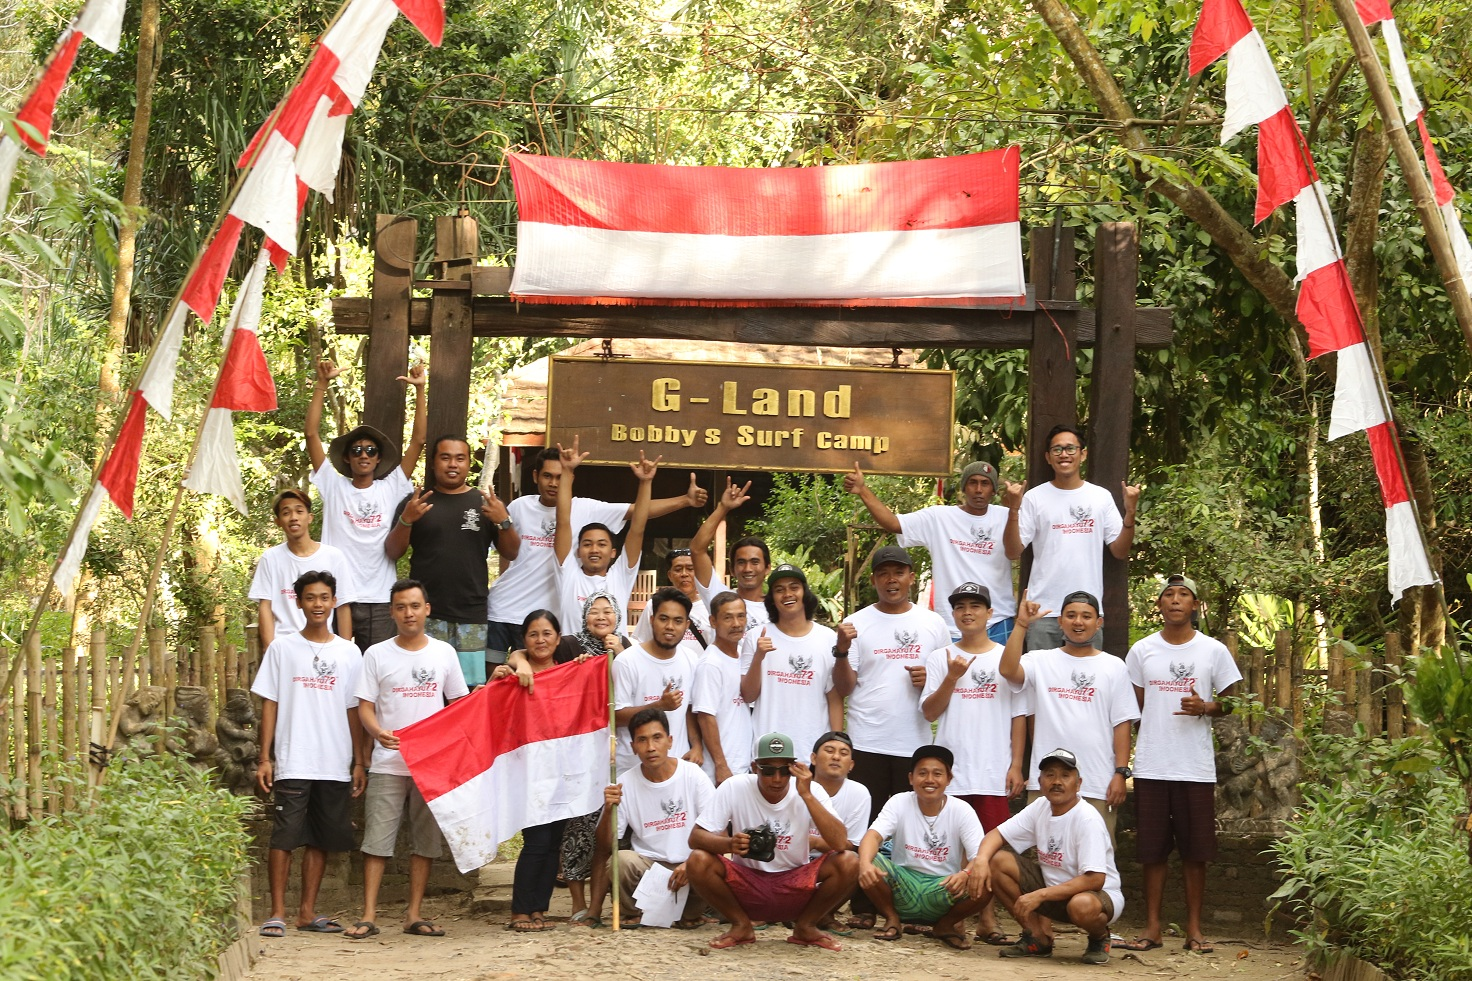 Indonesian Independence Day 2017 at G-land